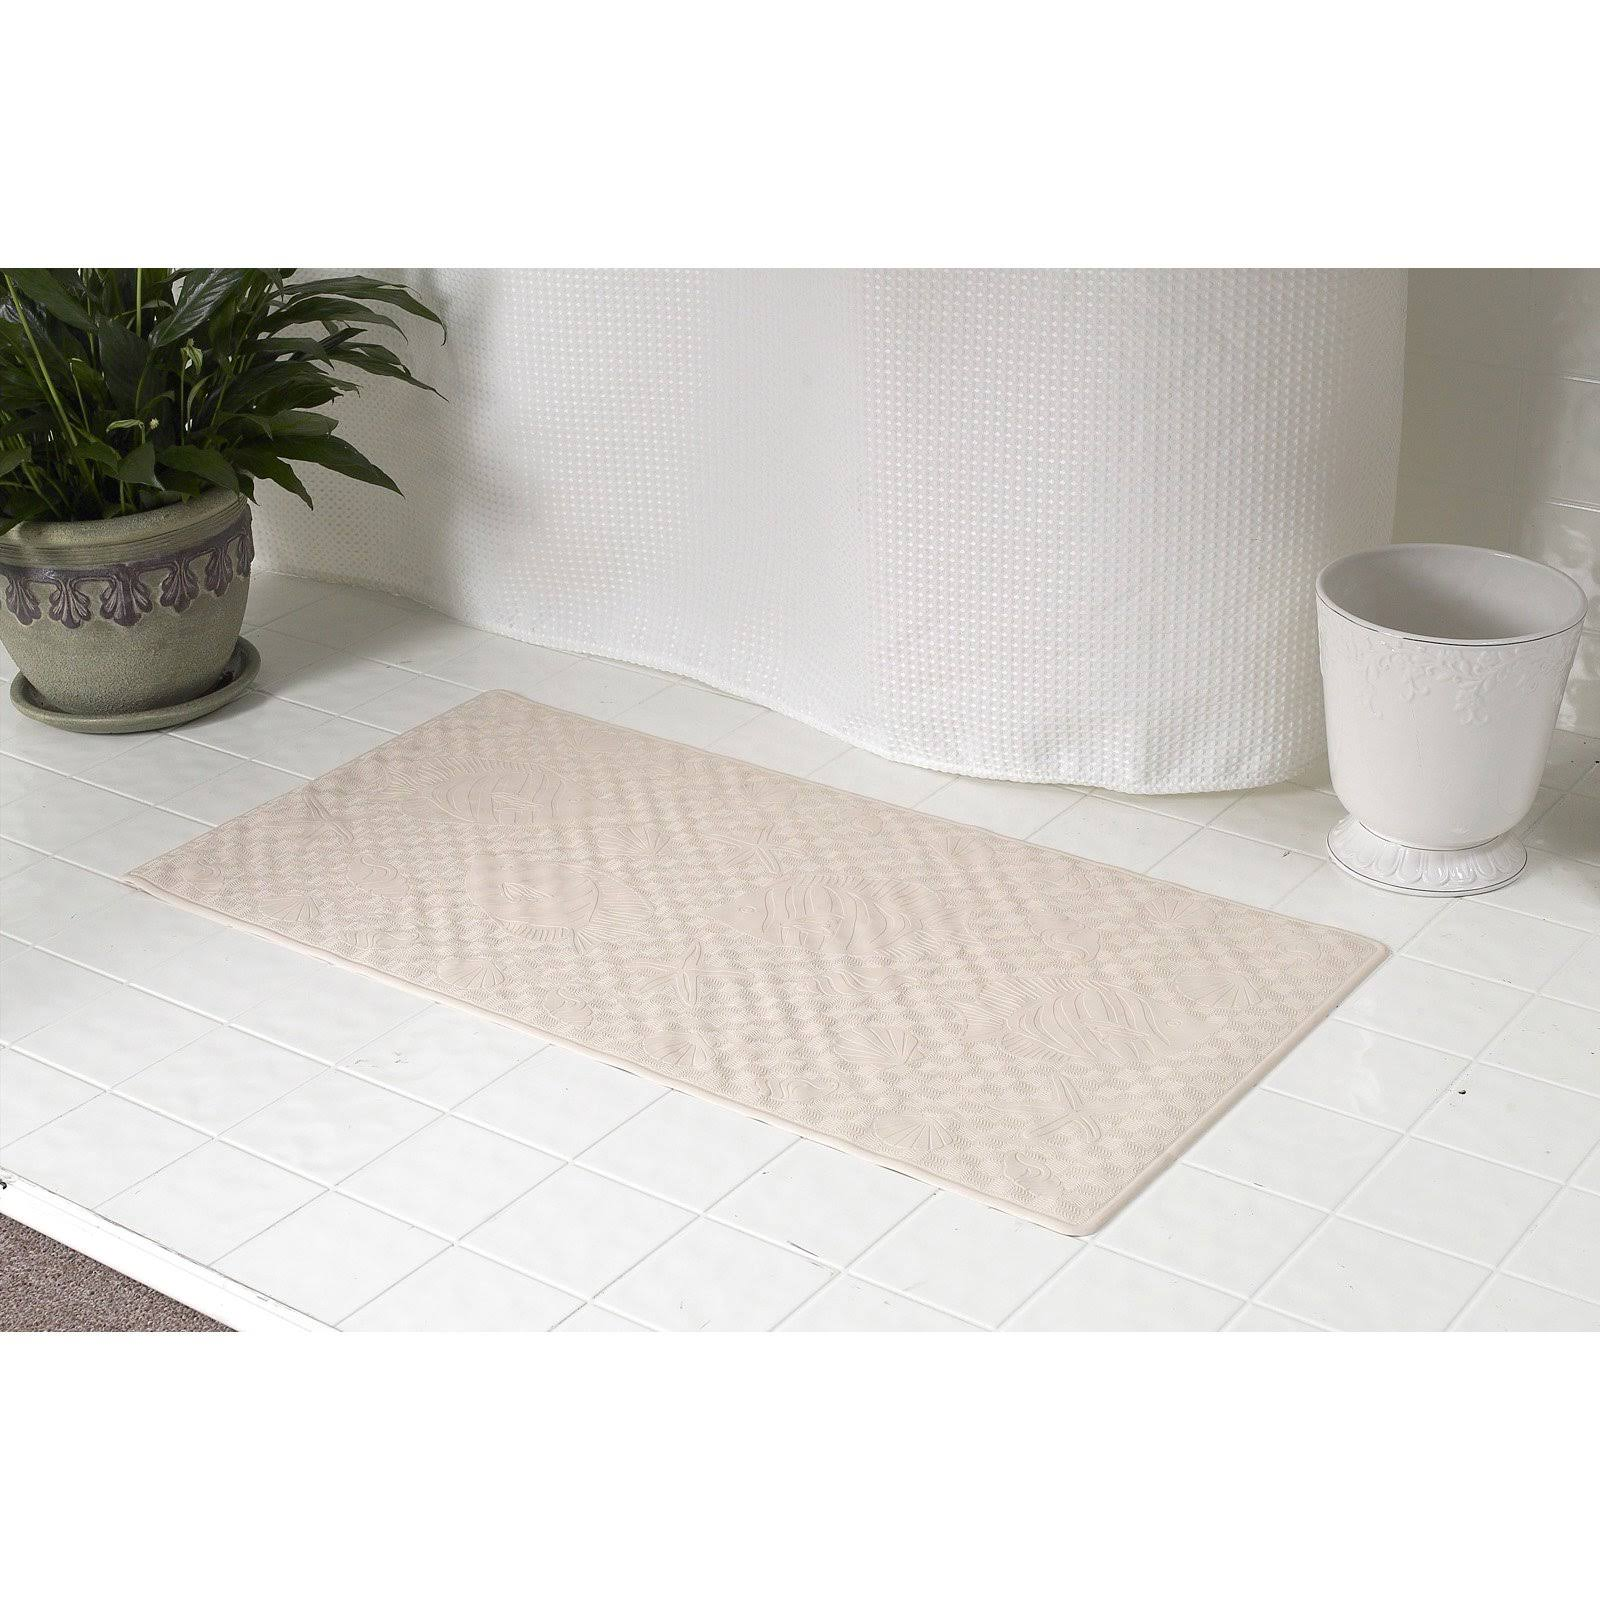 Carnation Home Fashions Medium Rubber Bath Mat Bone